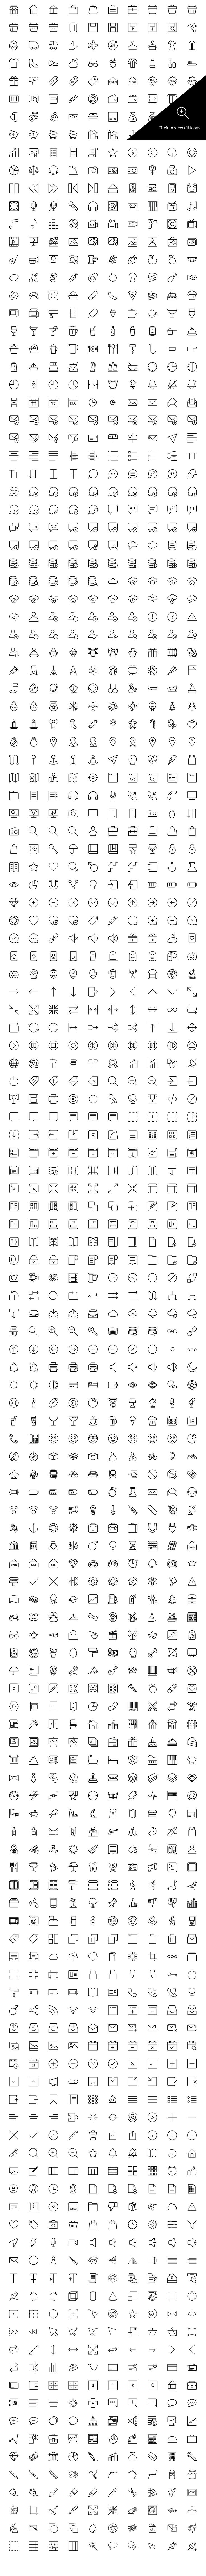 1430 Line Icons Bundle by Creative Stall on Creative Market